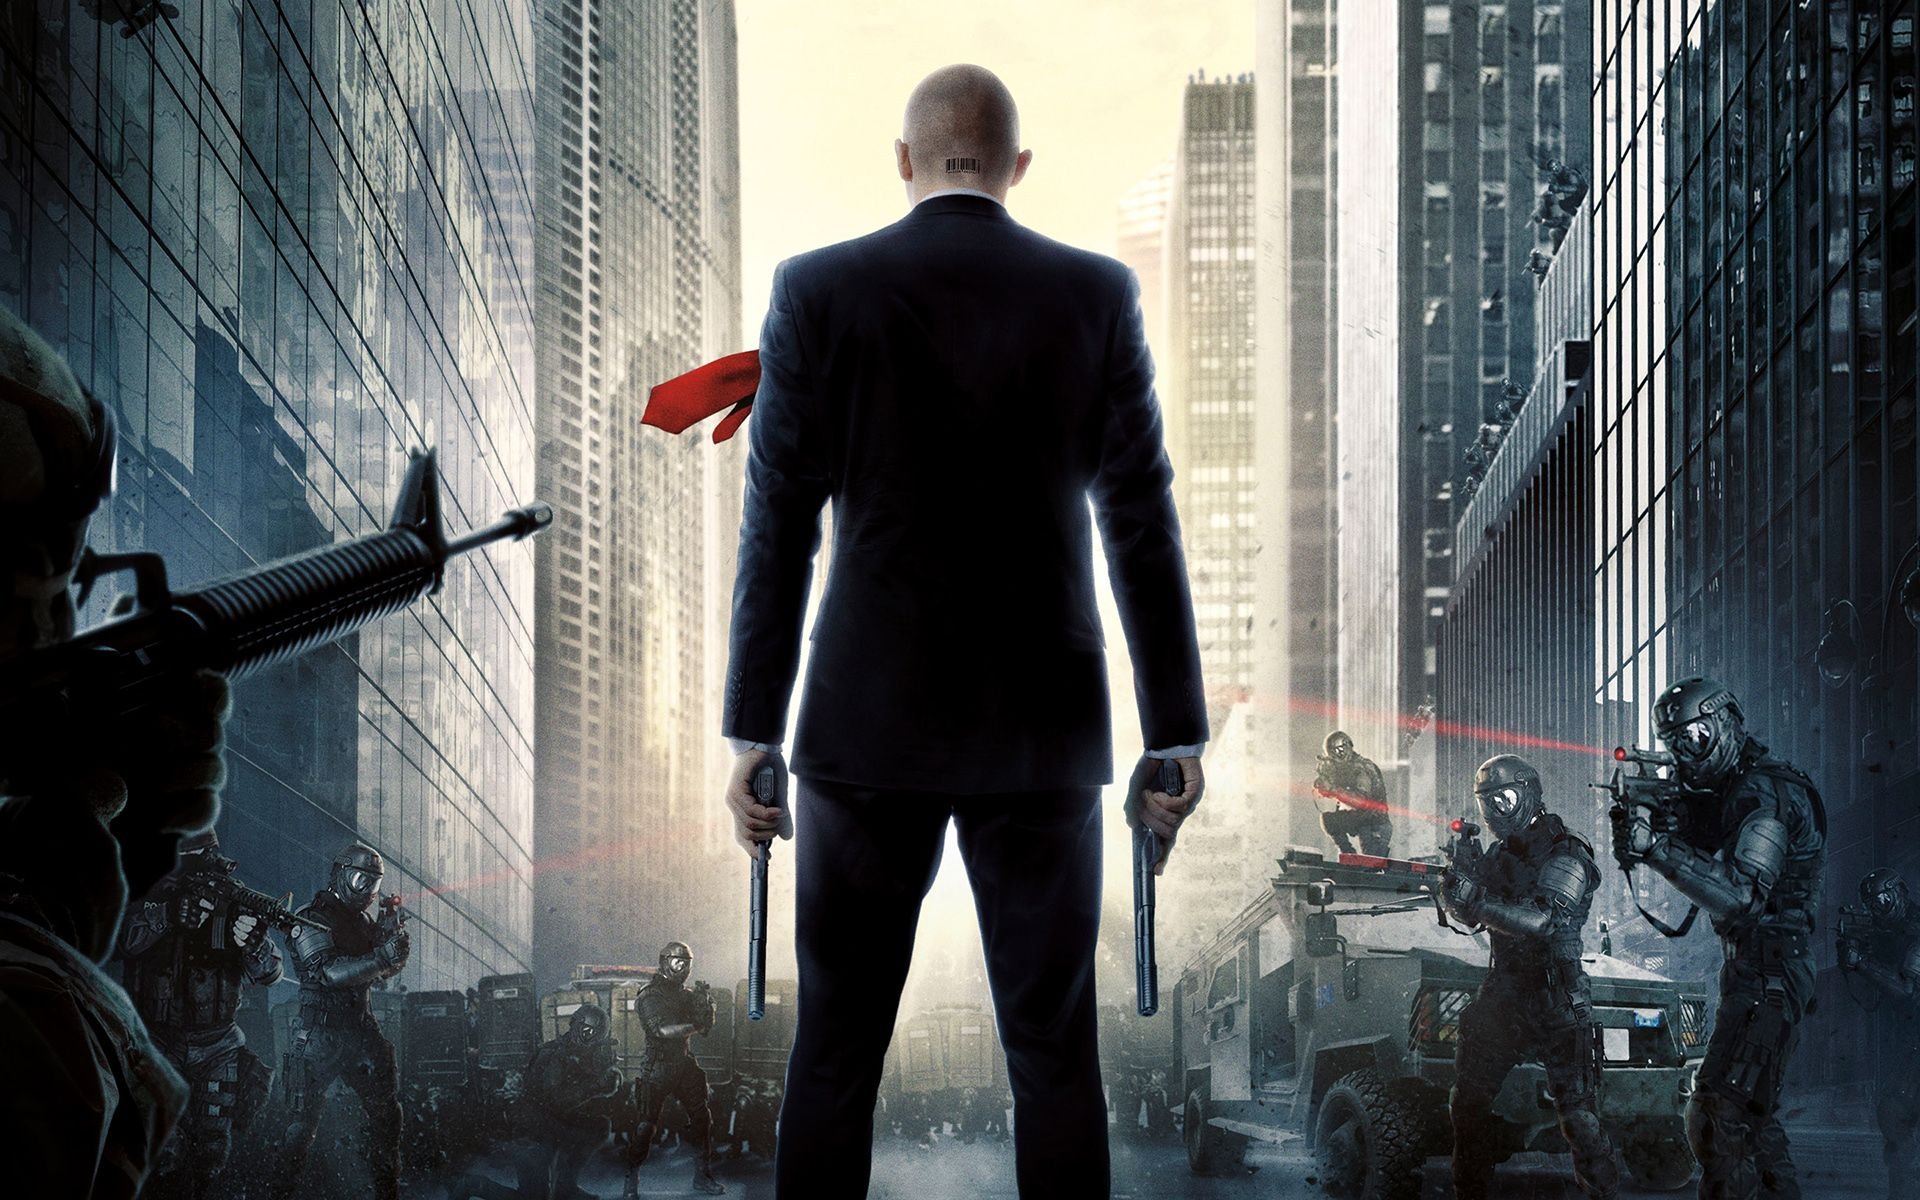 2015 hitman agent 47 wallpapers : find best latest 2015 hitman agent